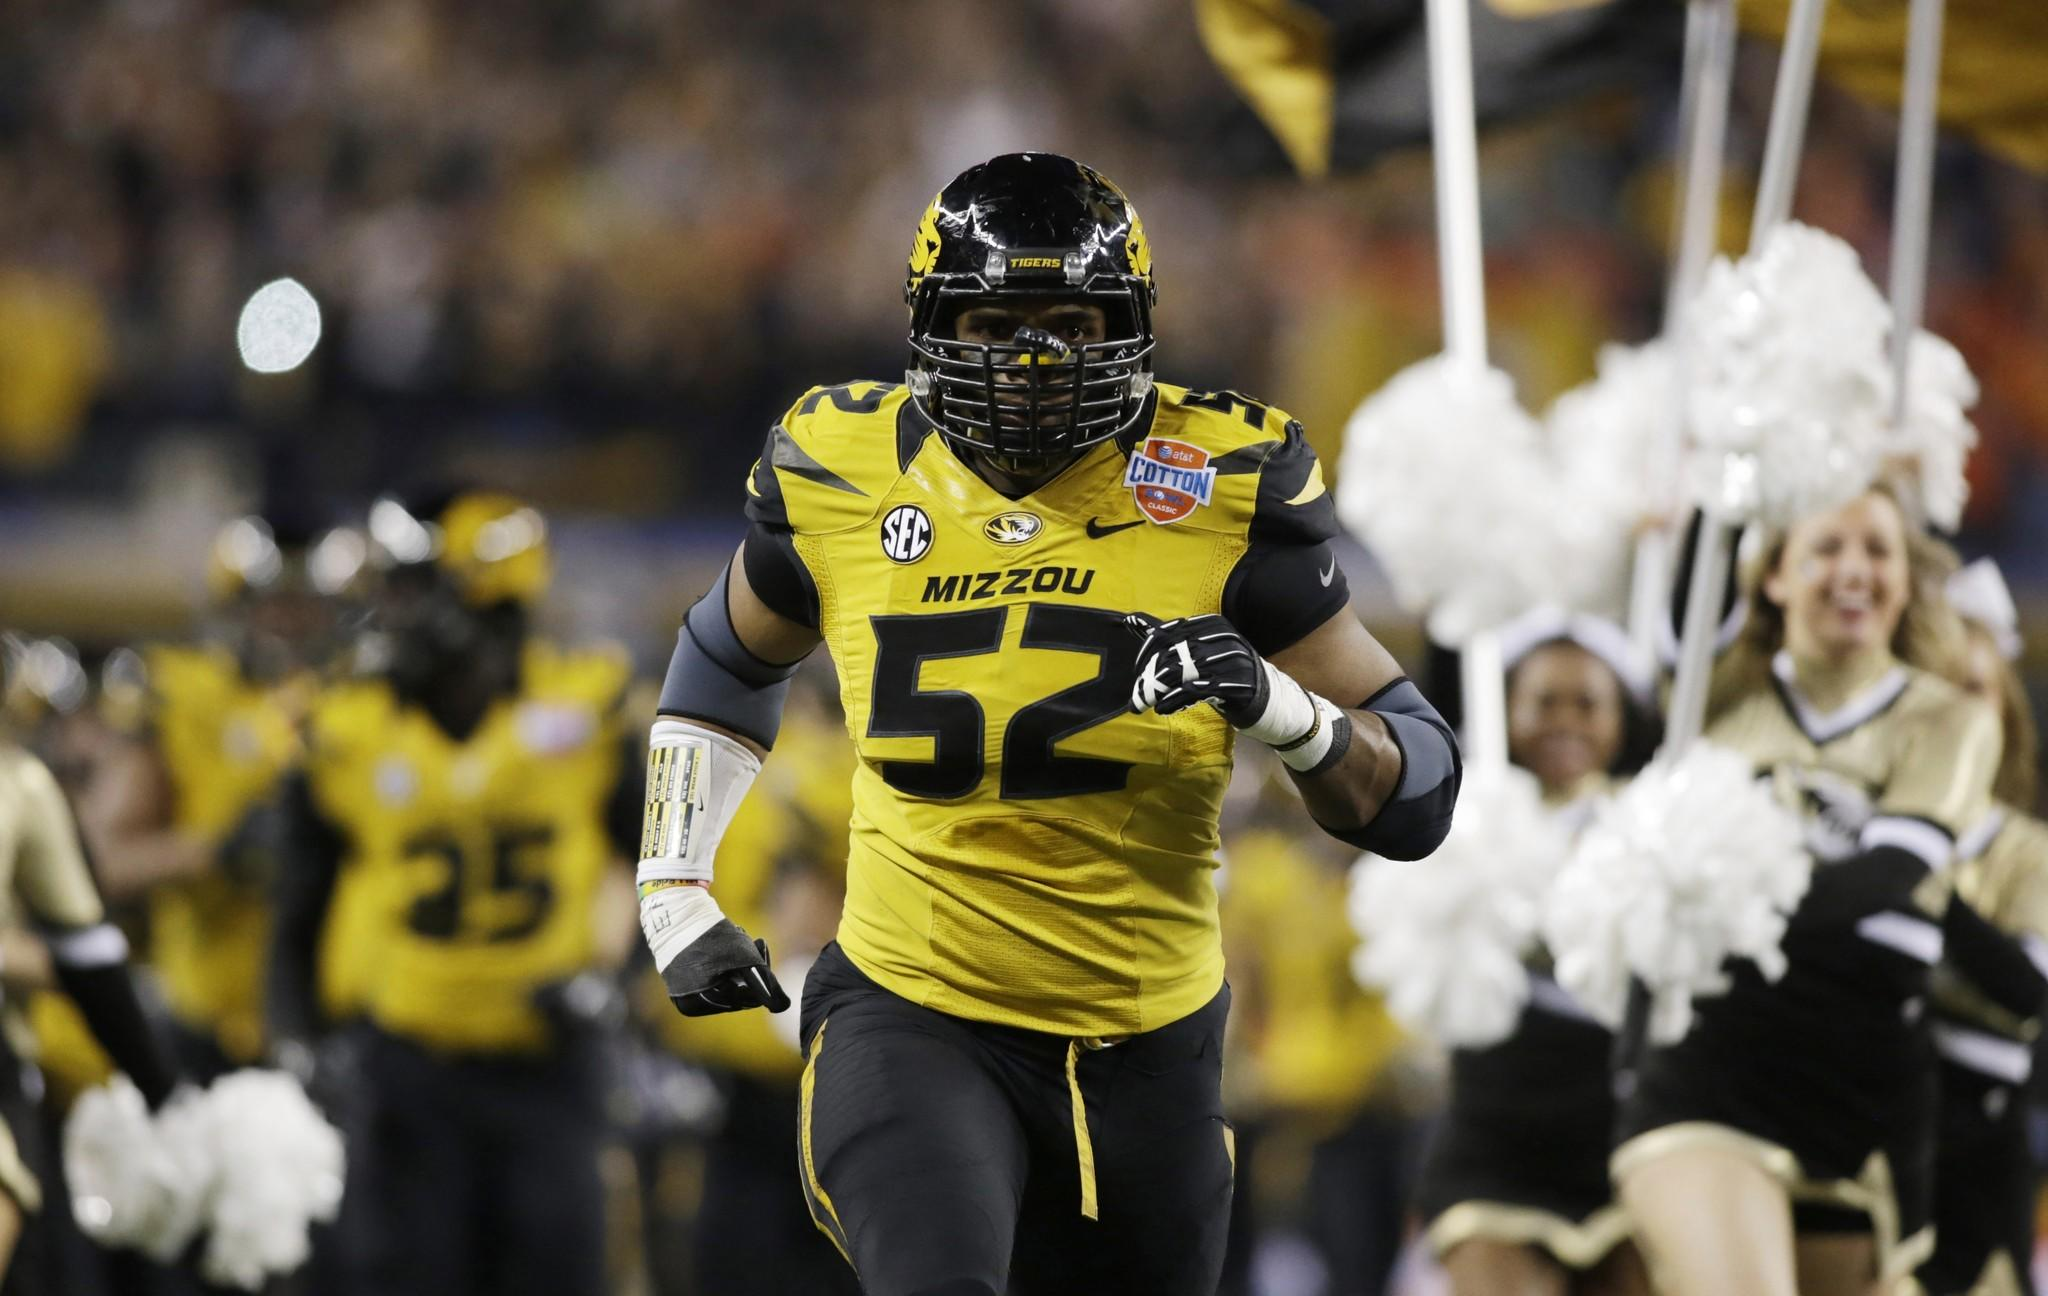 Missouri defensive lineman Michael Sam runs on the field before playing Oklahoma State in January.